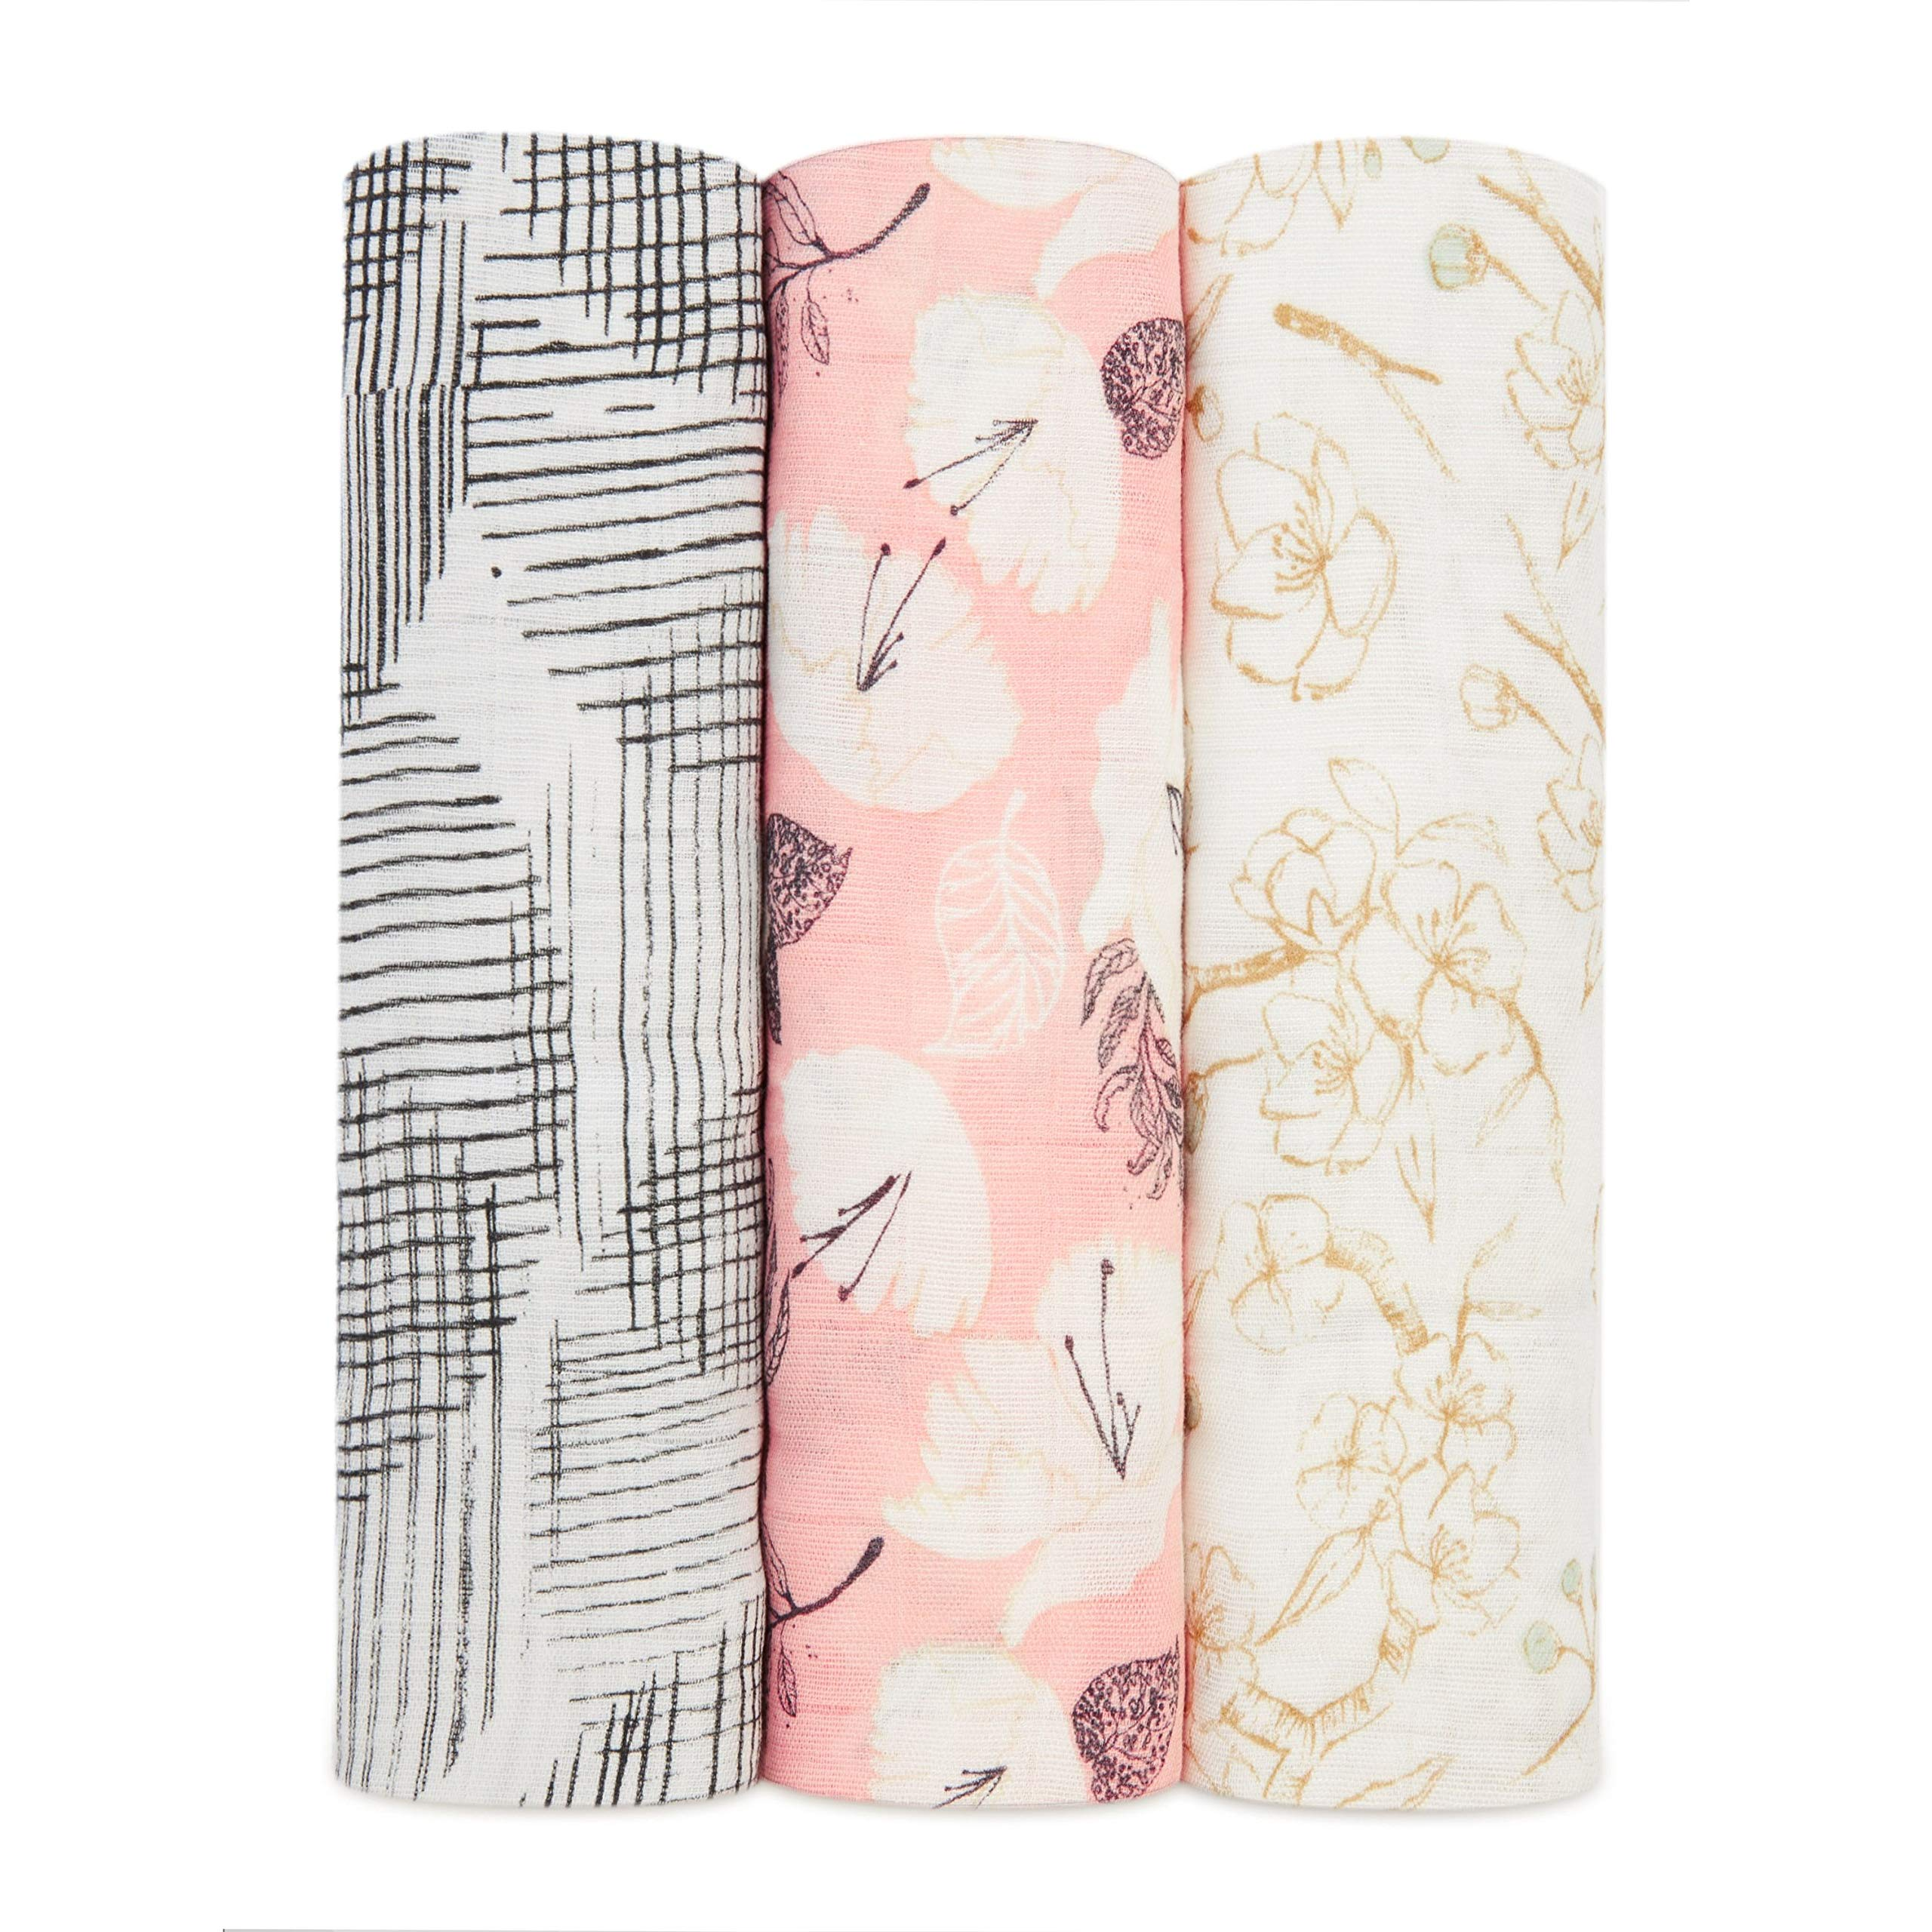 aden + anais Silky Soft 3 Piece Swaddle Baby Blanket, Pretty Petals